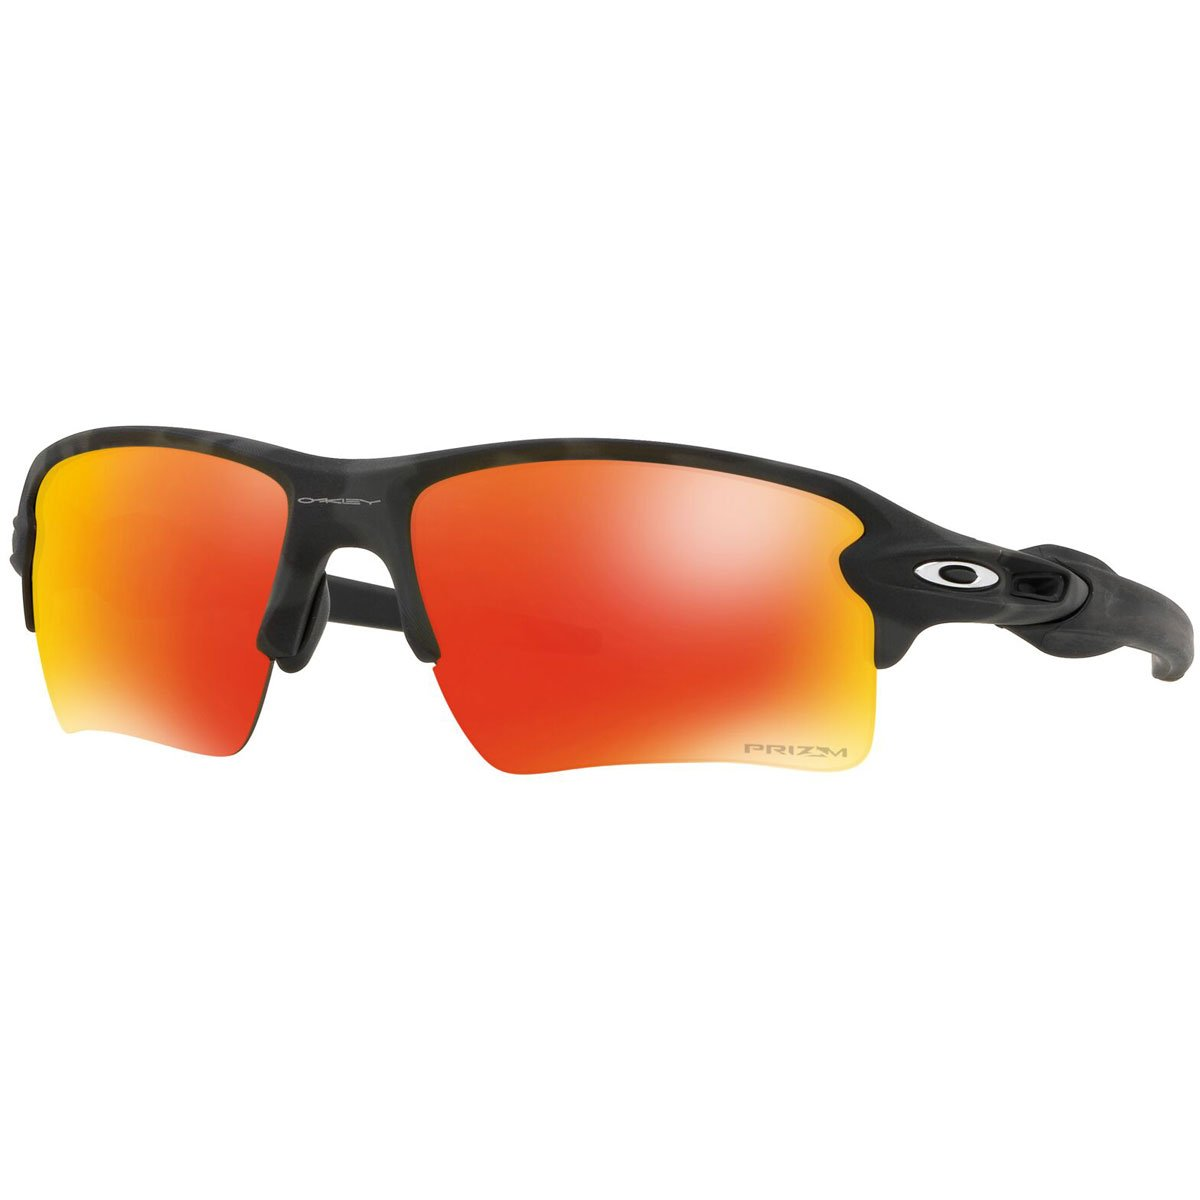 Oakley Men's OO9188 Flak 2.0 XL Rectangular Sunglasses, Black Camo/Prizm Ruby, 59 mm by Oakley